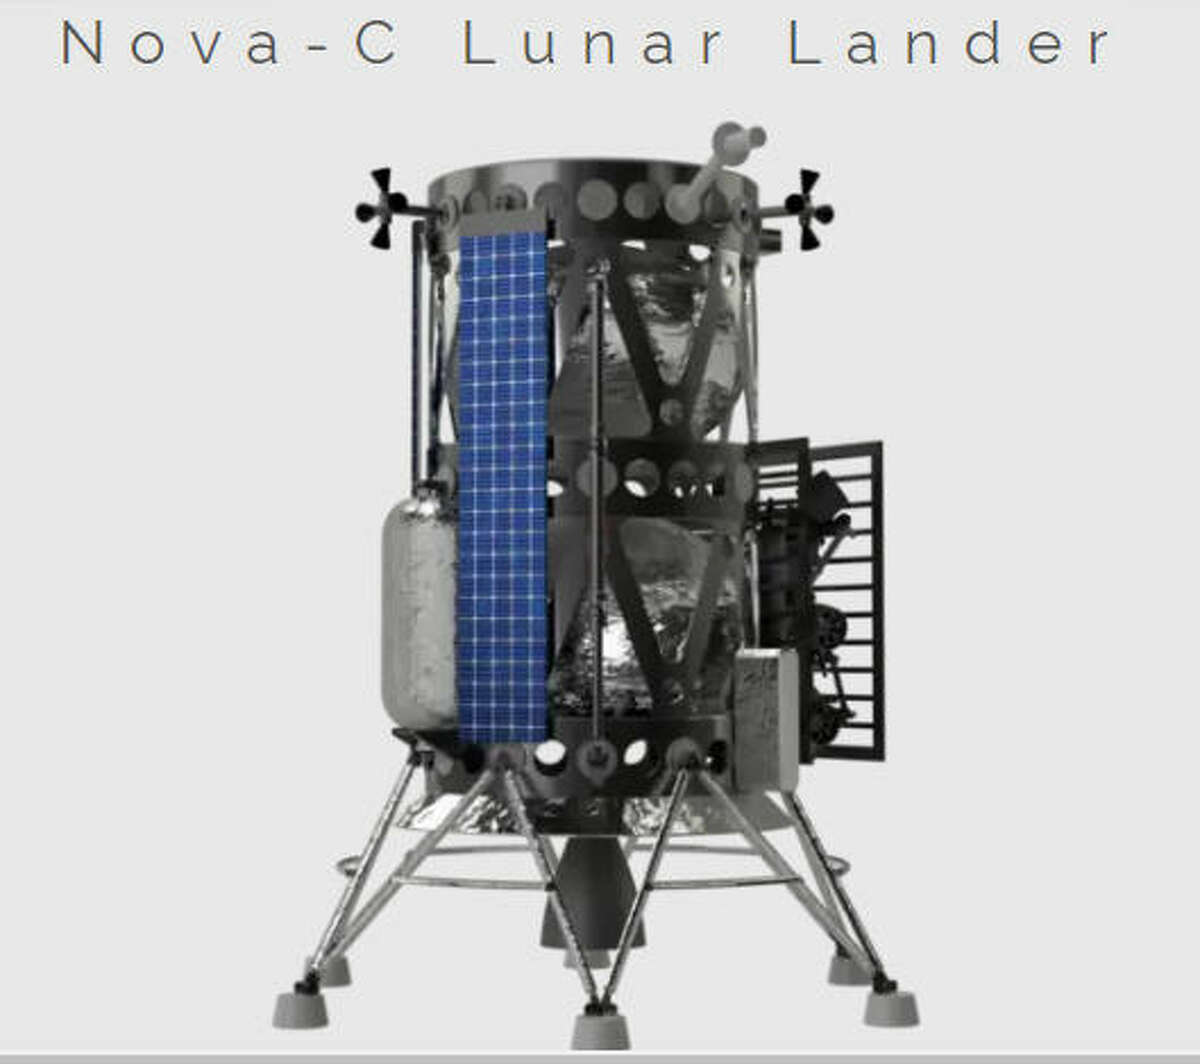 This is a rendering of Houston-based Intuitive Machines' moon lander, known as Nova-C. The company was one of nine chosen by NASA to build a lander that could carry science experiments and instruments to the lunar surface.